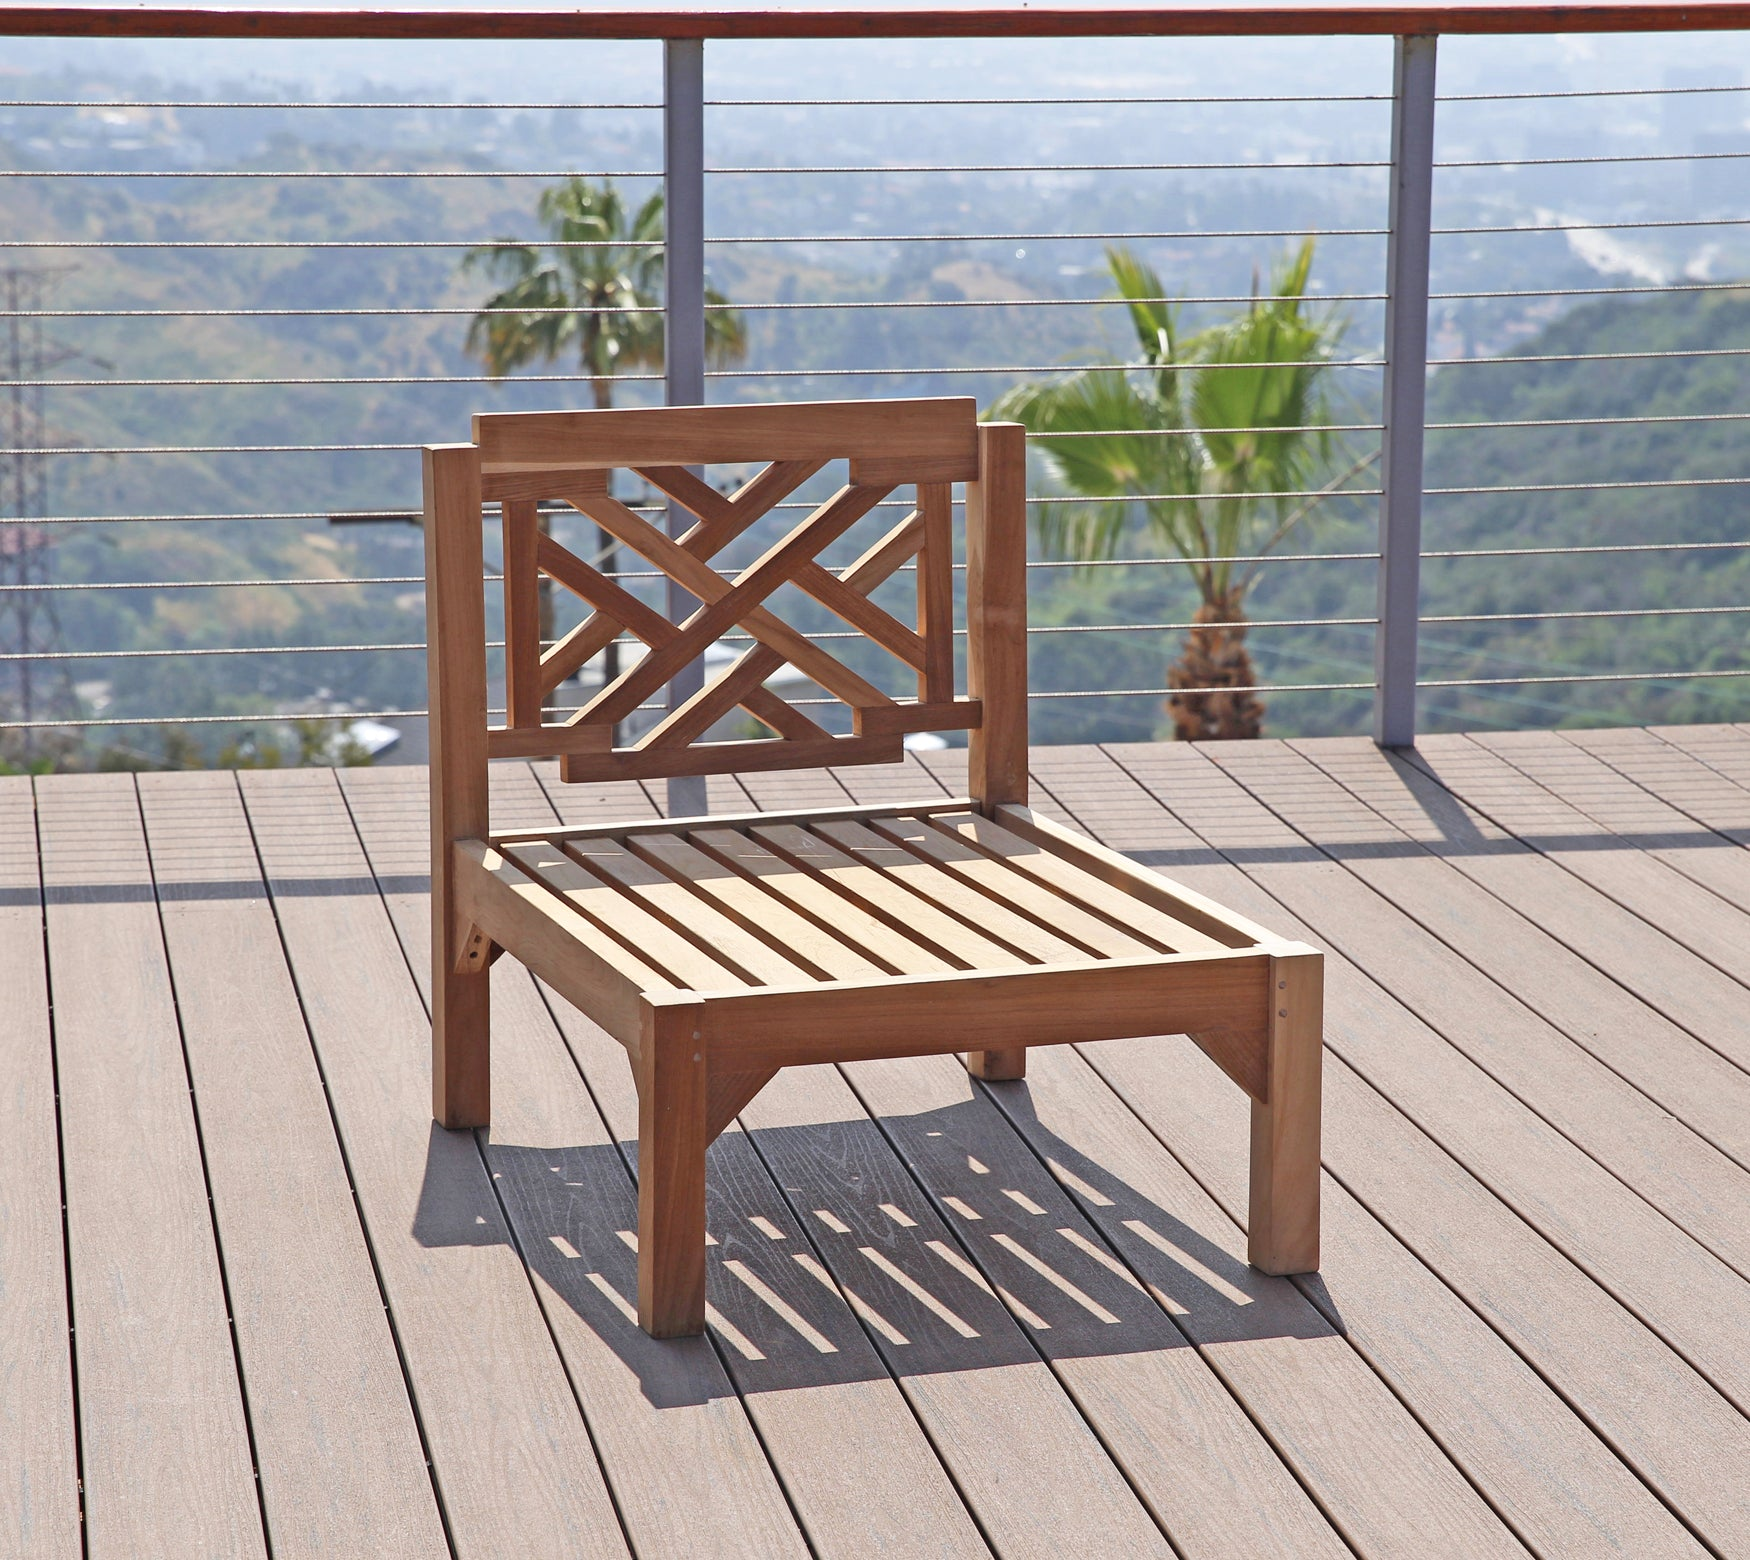 Sunbrella Cushion · Monterey Teak Outdoor Armless Chair. & Teak Armless Chair | Subrella Cushion | Modular Patio Furniture ...